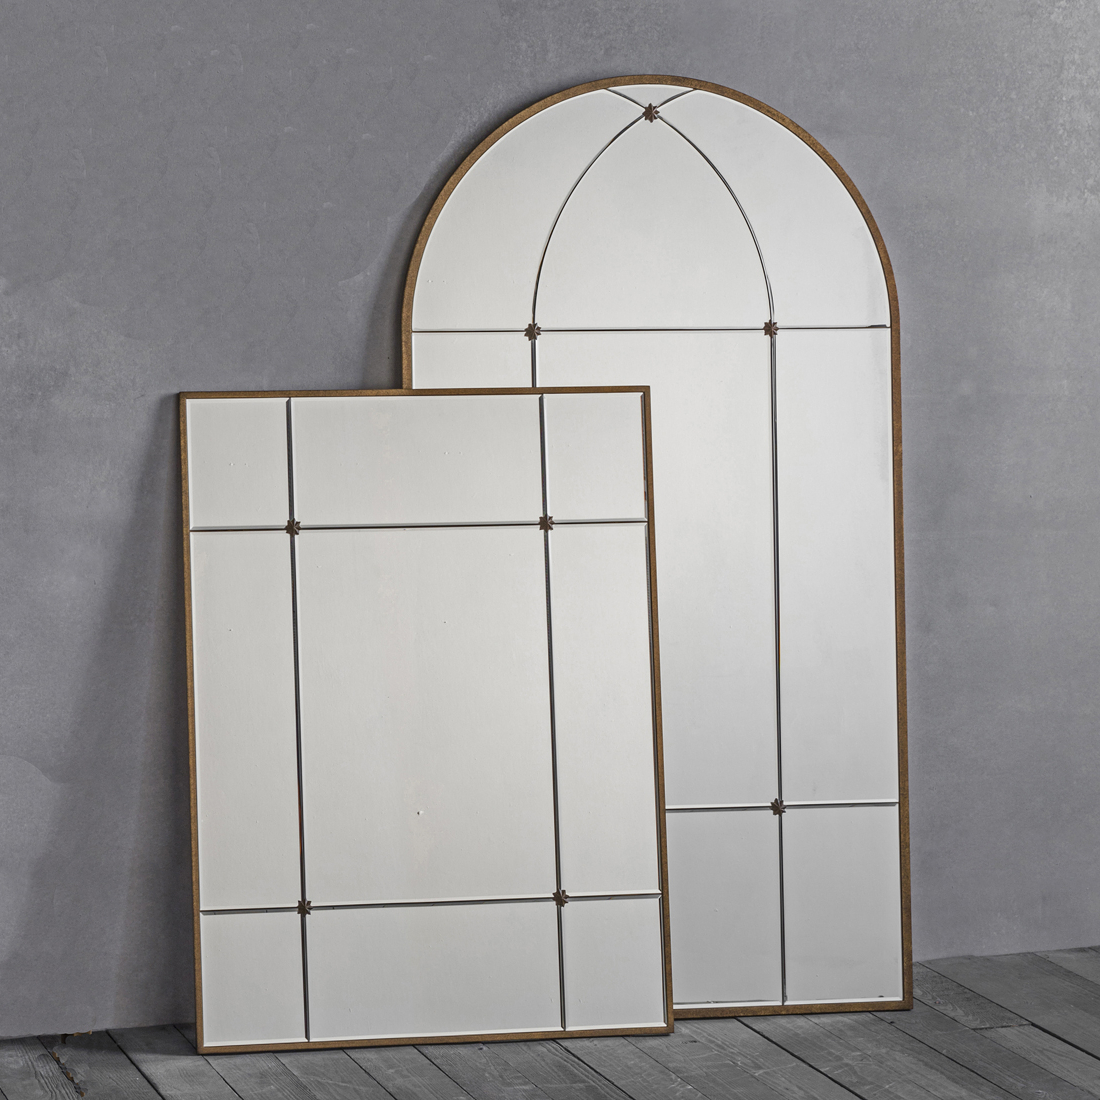 Arch Wall Mirrors Pertaining To Most Current Gold Window Wall Mirror – Arch Or Rectangle (View 4 of 20)